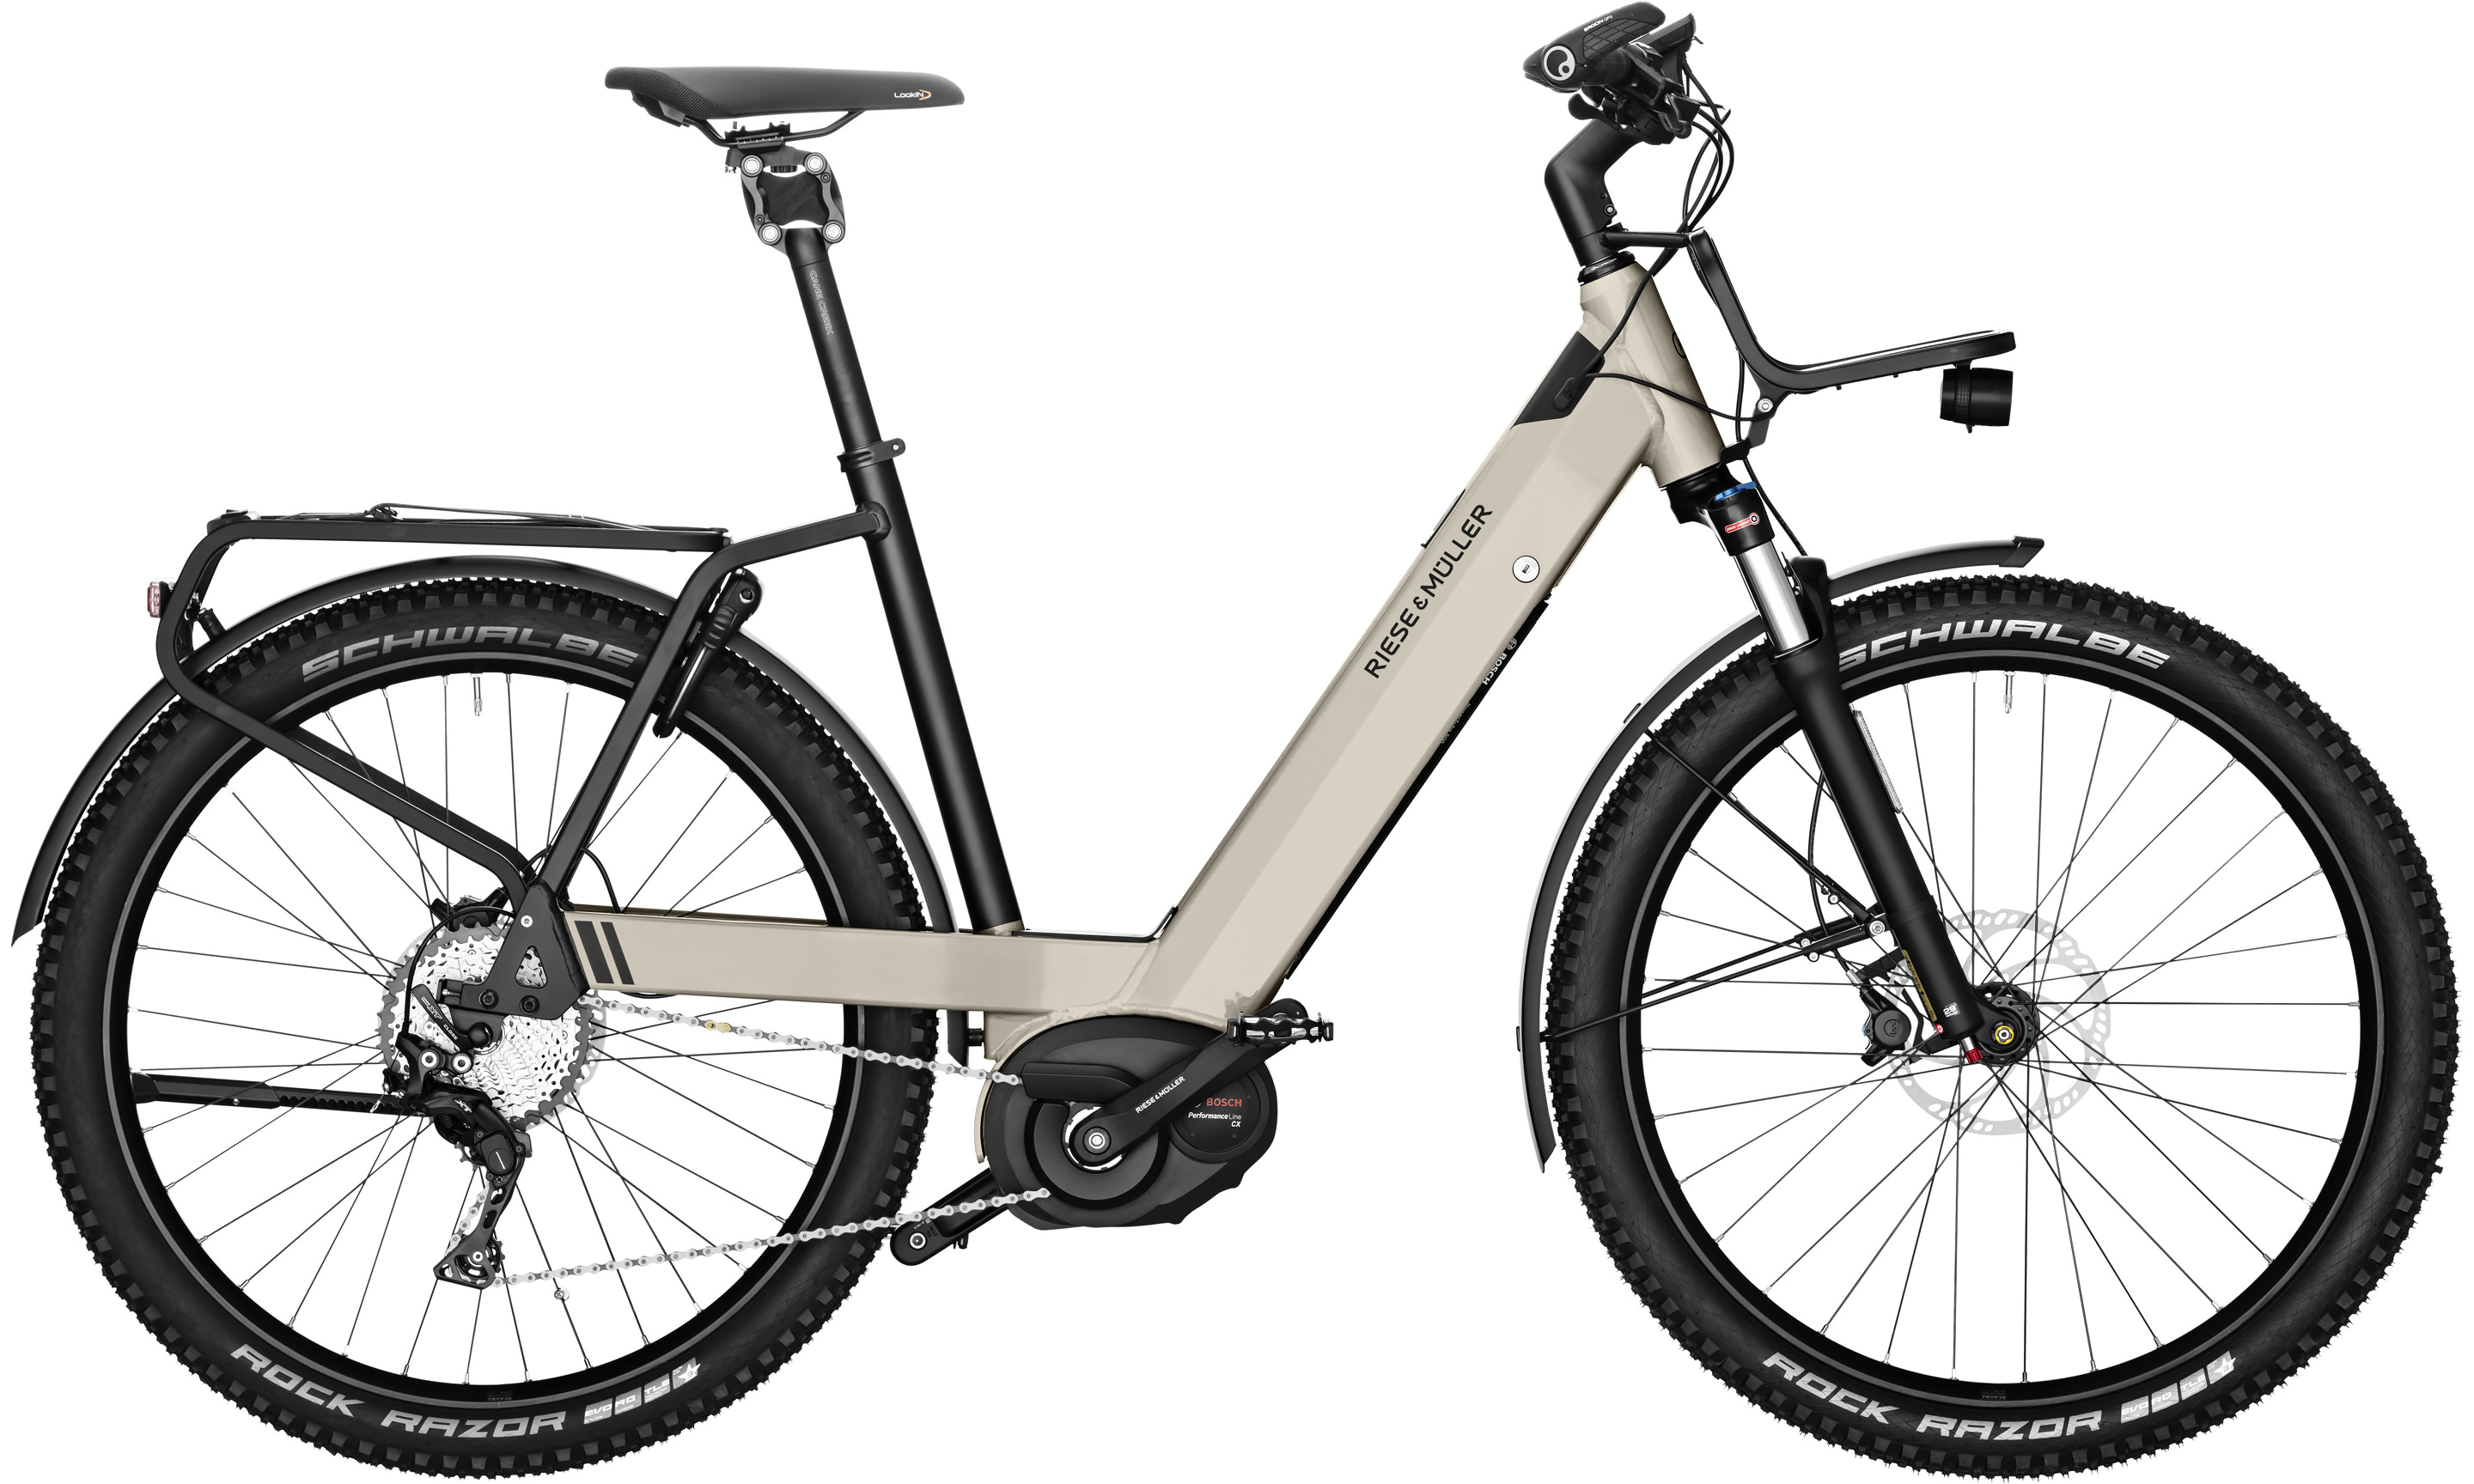 Nevo GX touring | Bouticycle